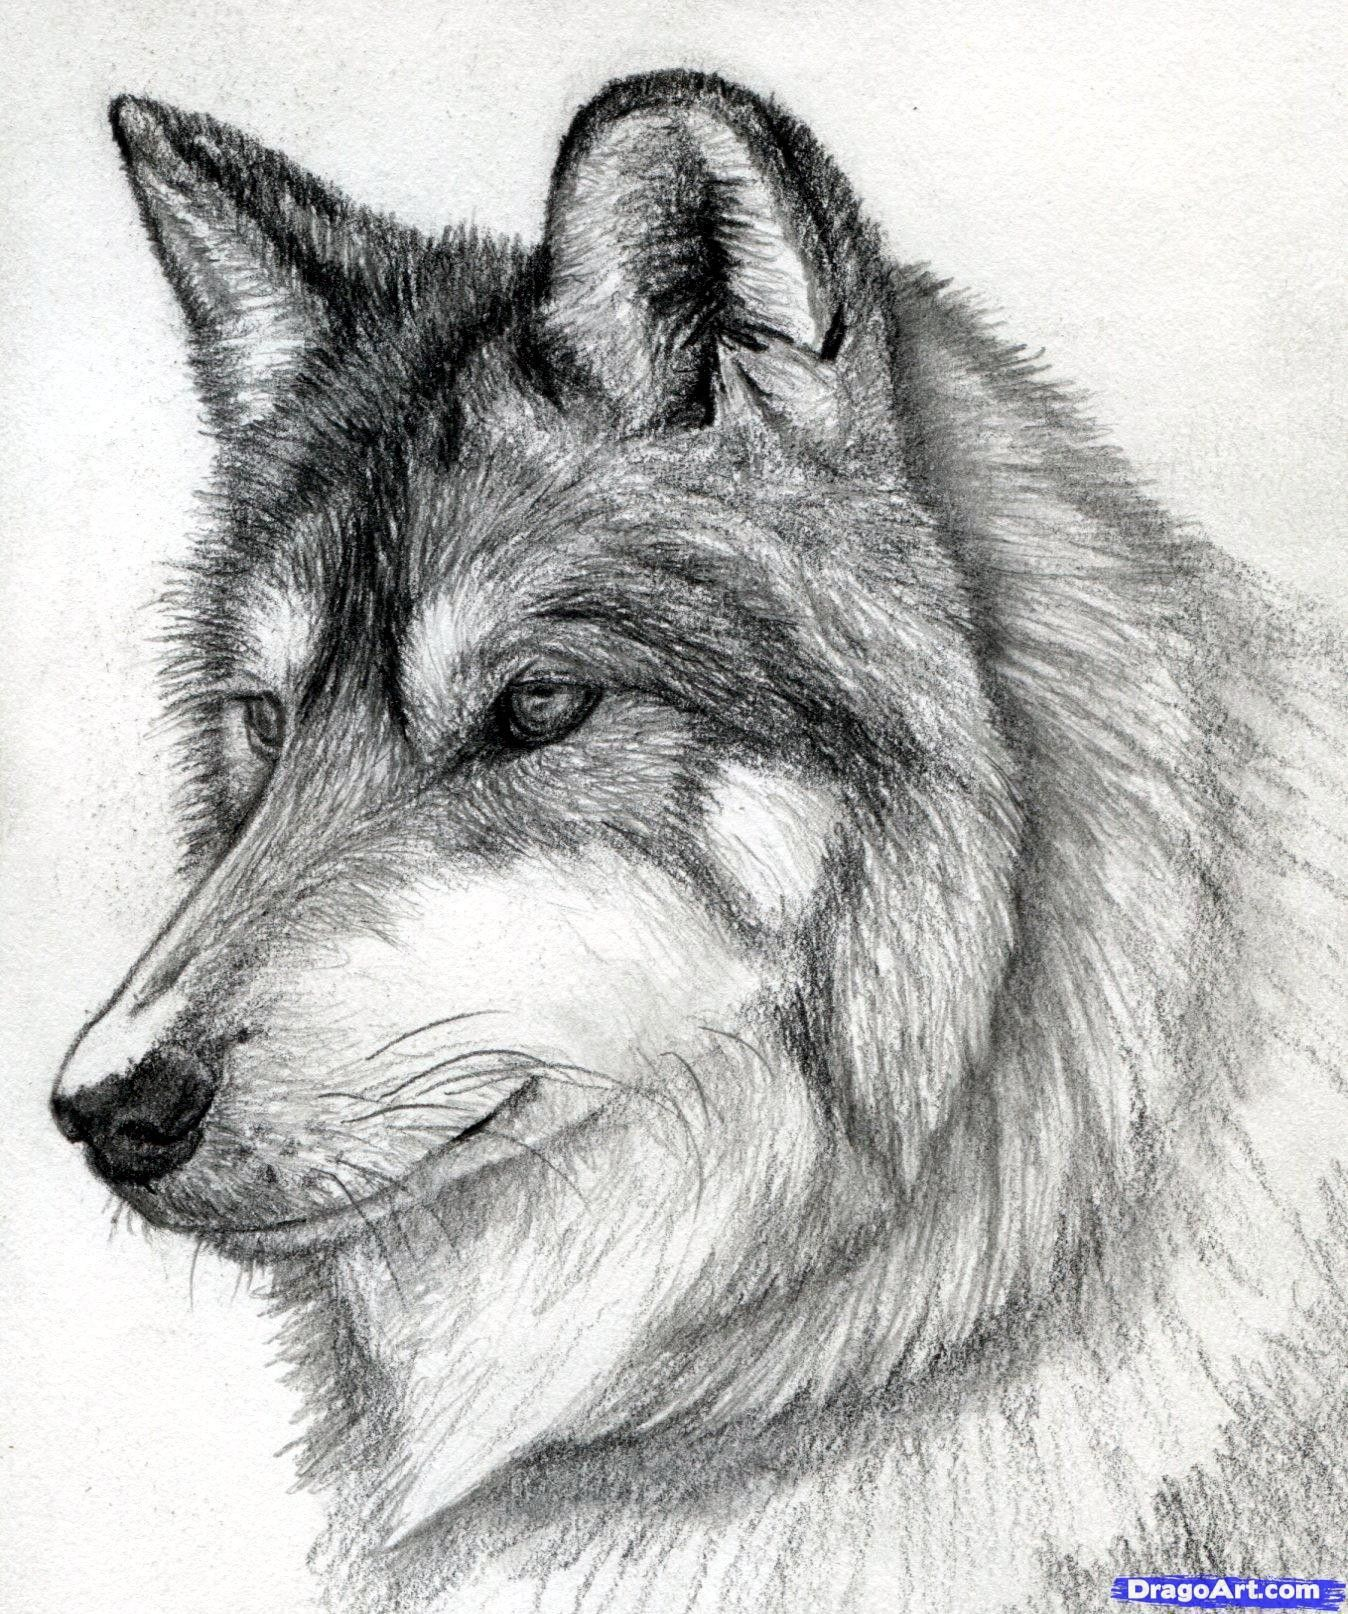 Cool Drawings: Cool Drawings Of A Wolf